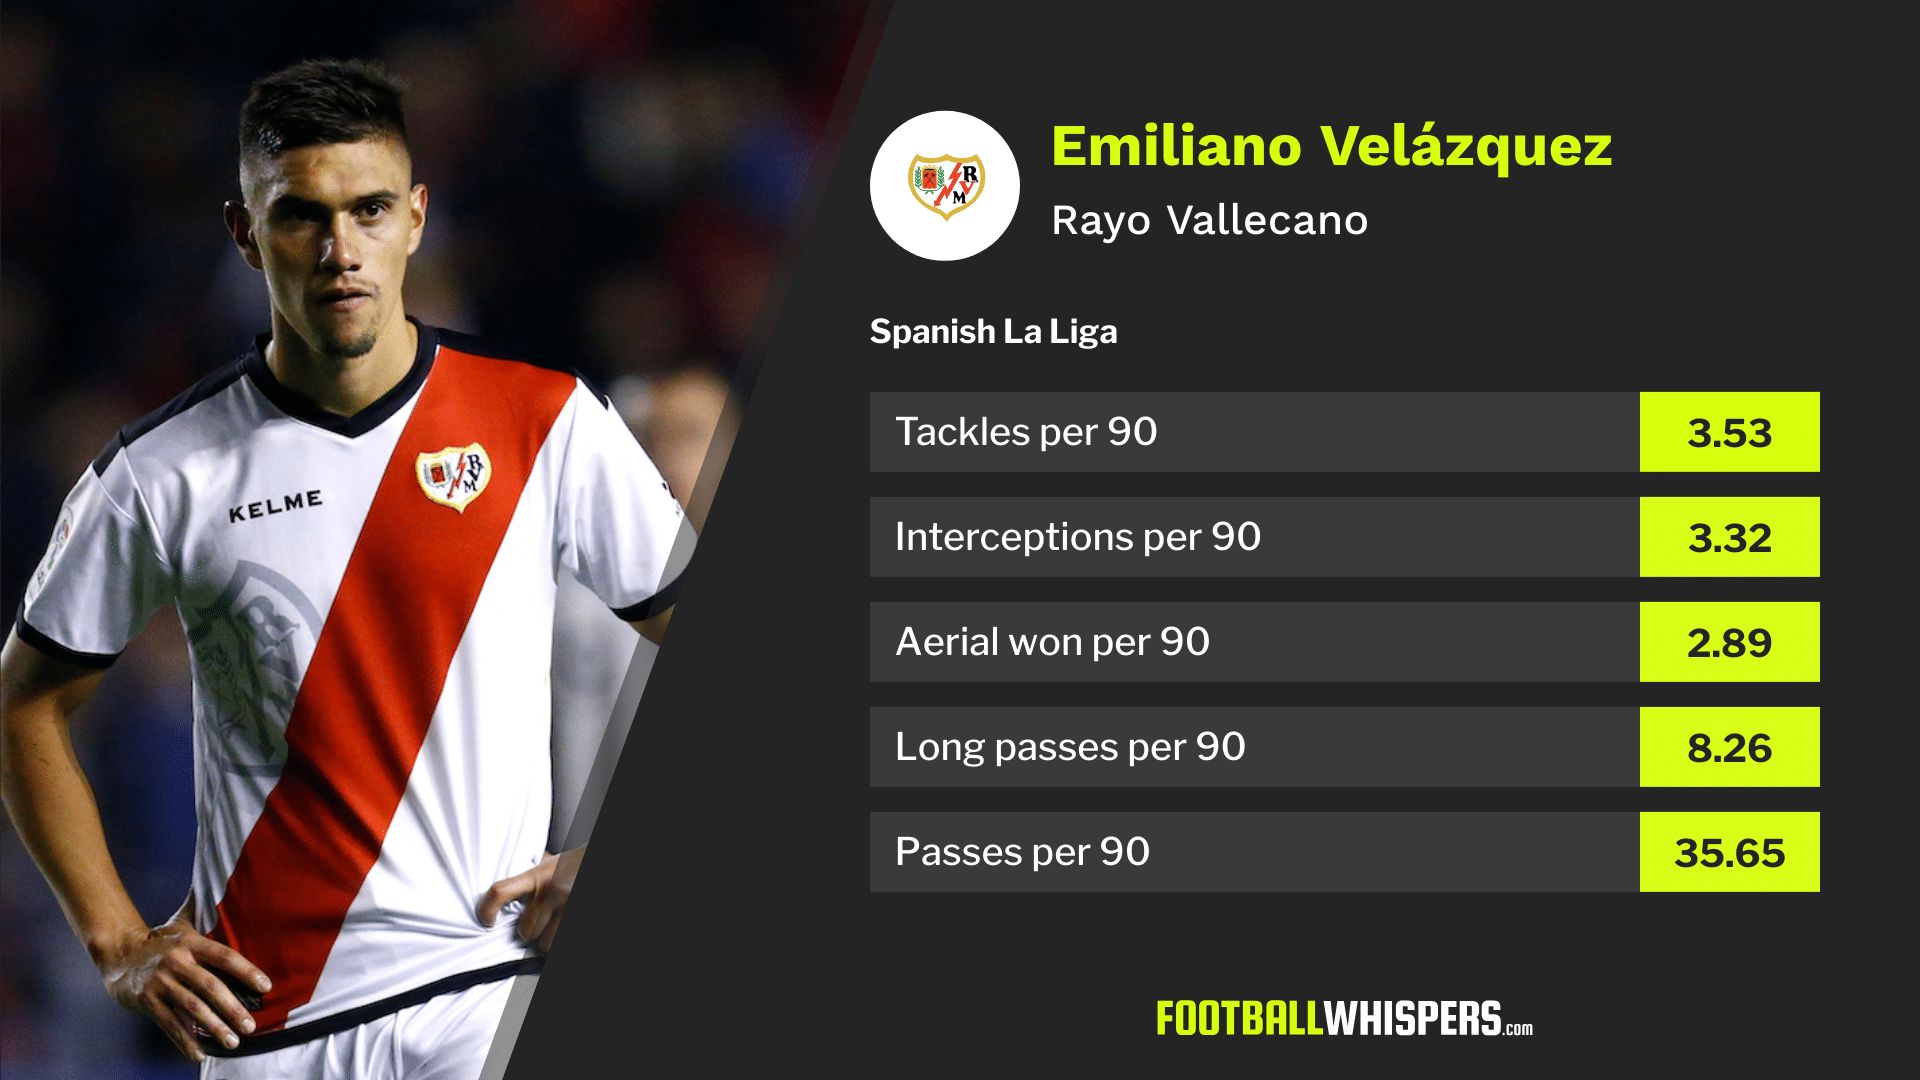 Arsenal might want to look at Rayo Vallecano's Emiliano Velázquez this summer